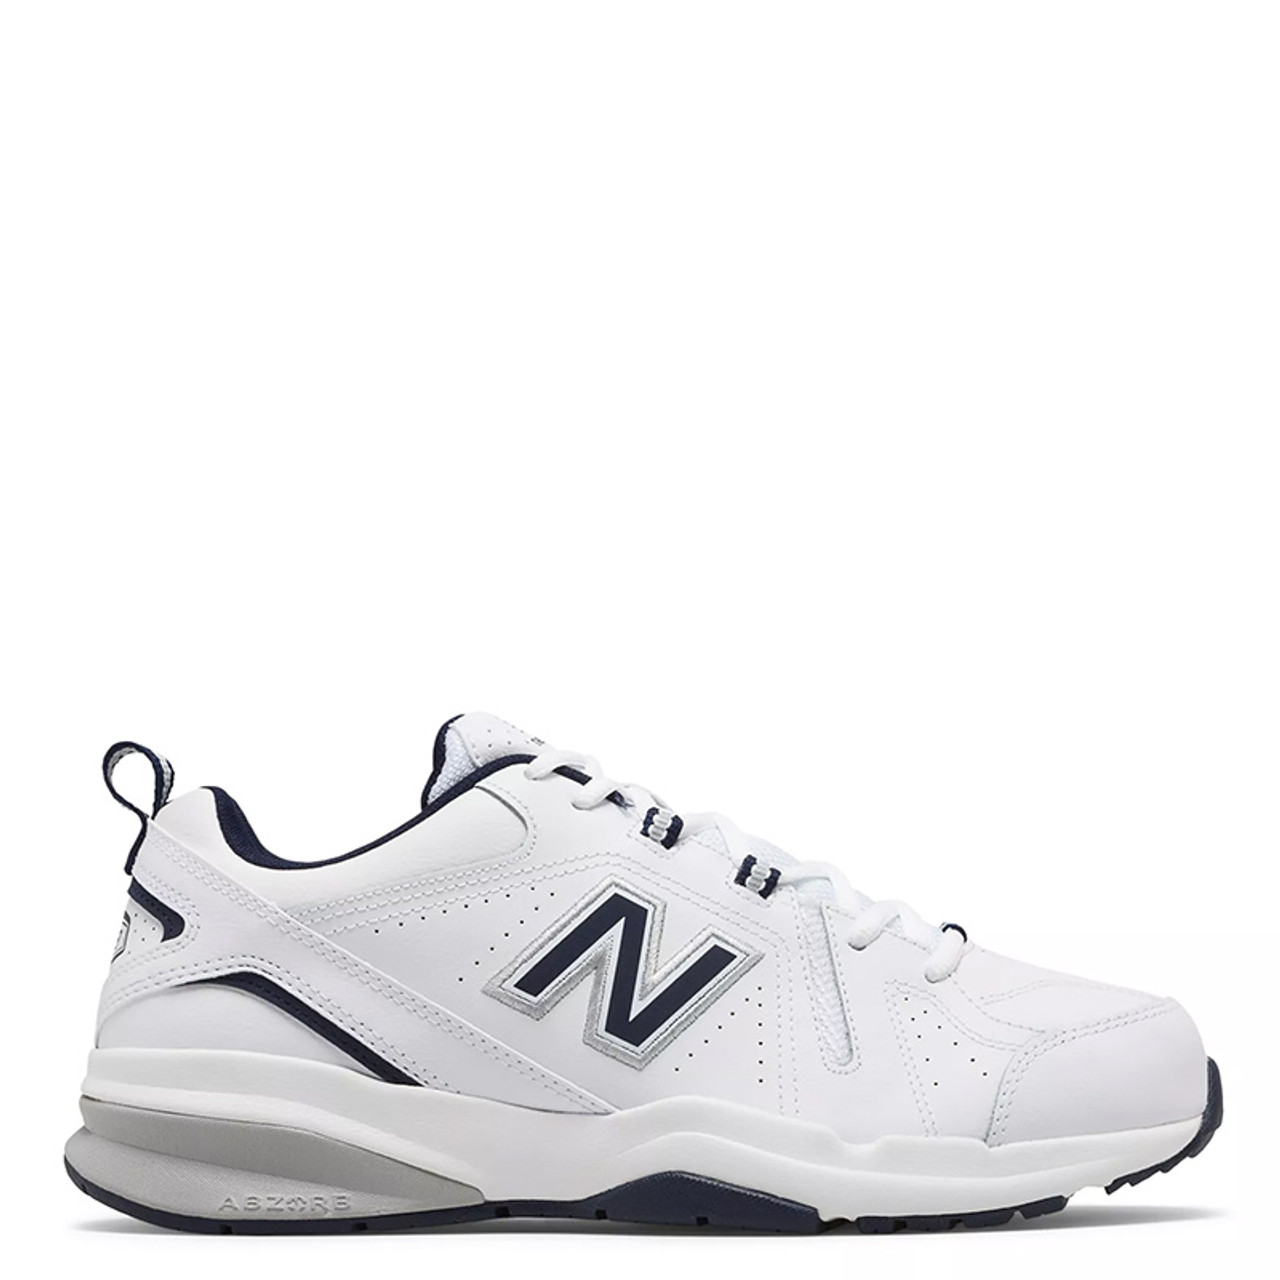 636528748f035 New Balance 608V5 Men's Classic White with Navy Leather Trainers - Family  Footwear Center